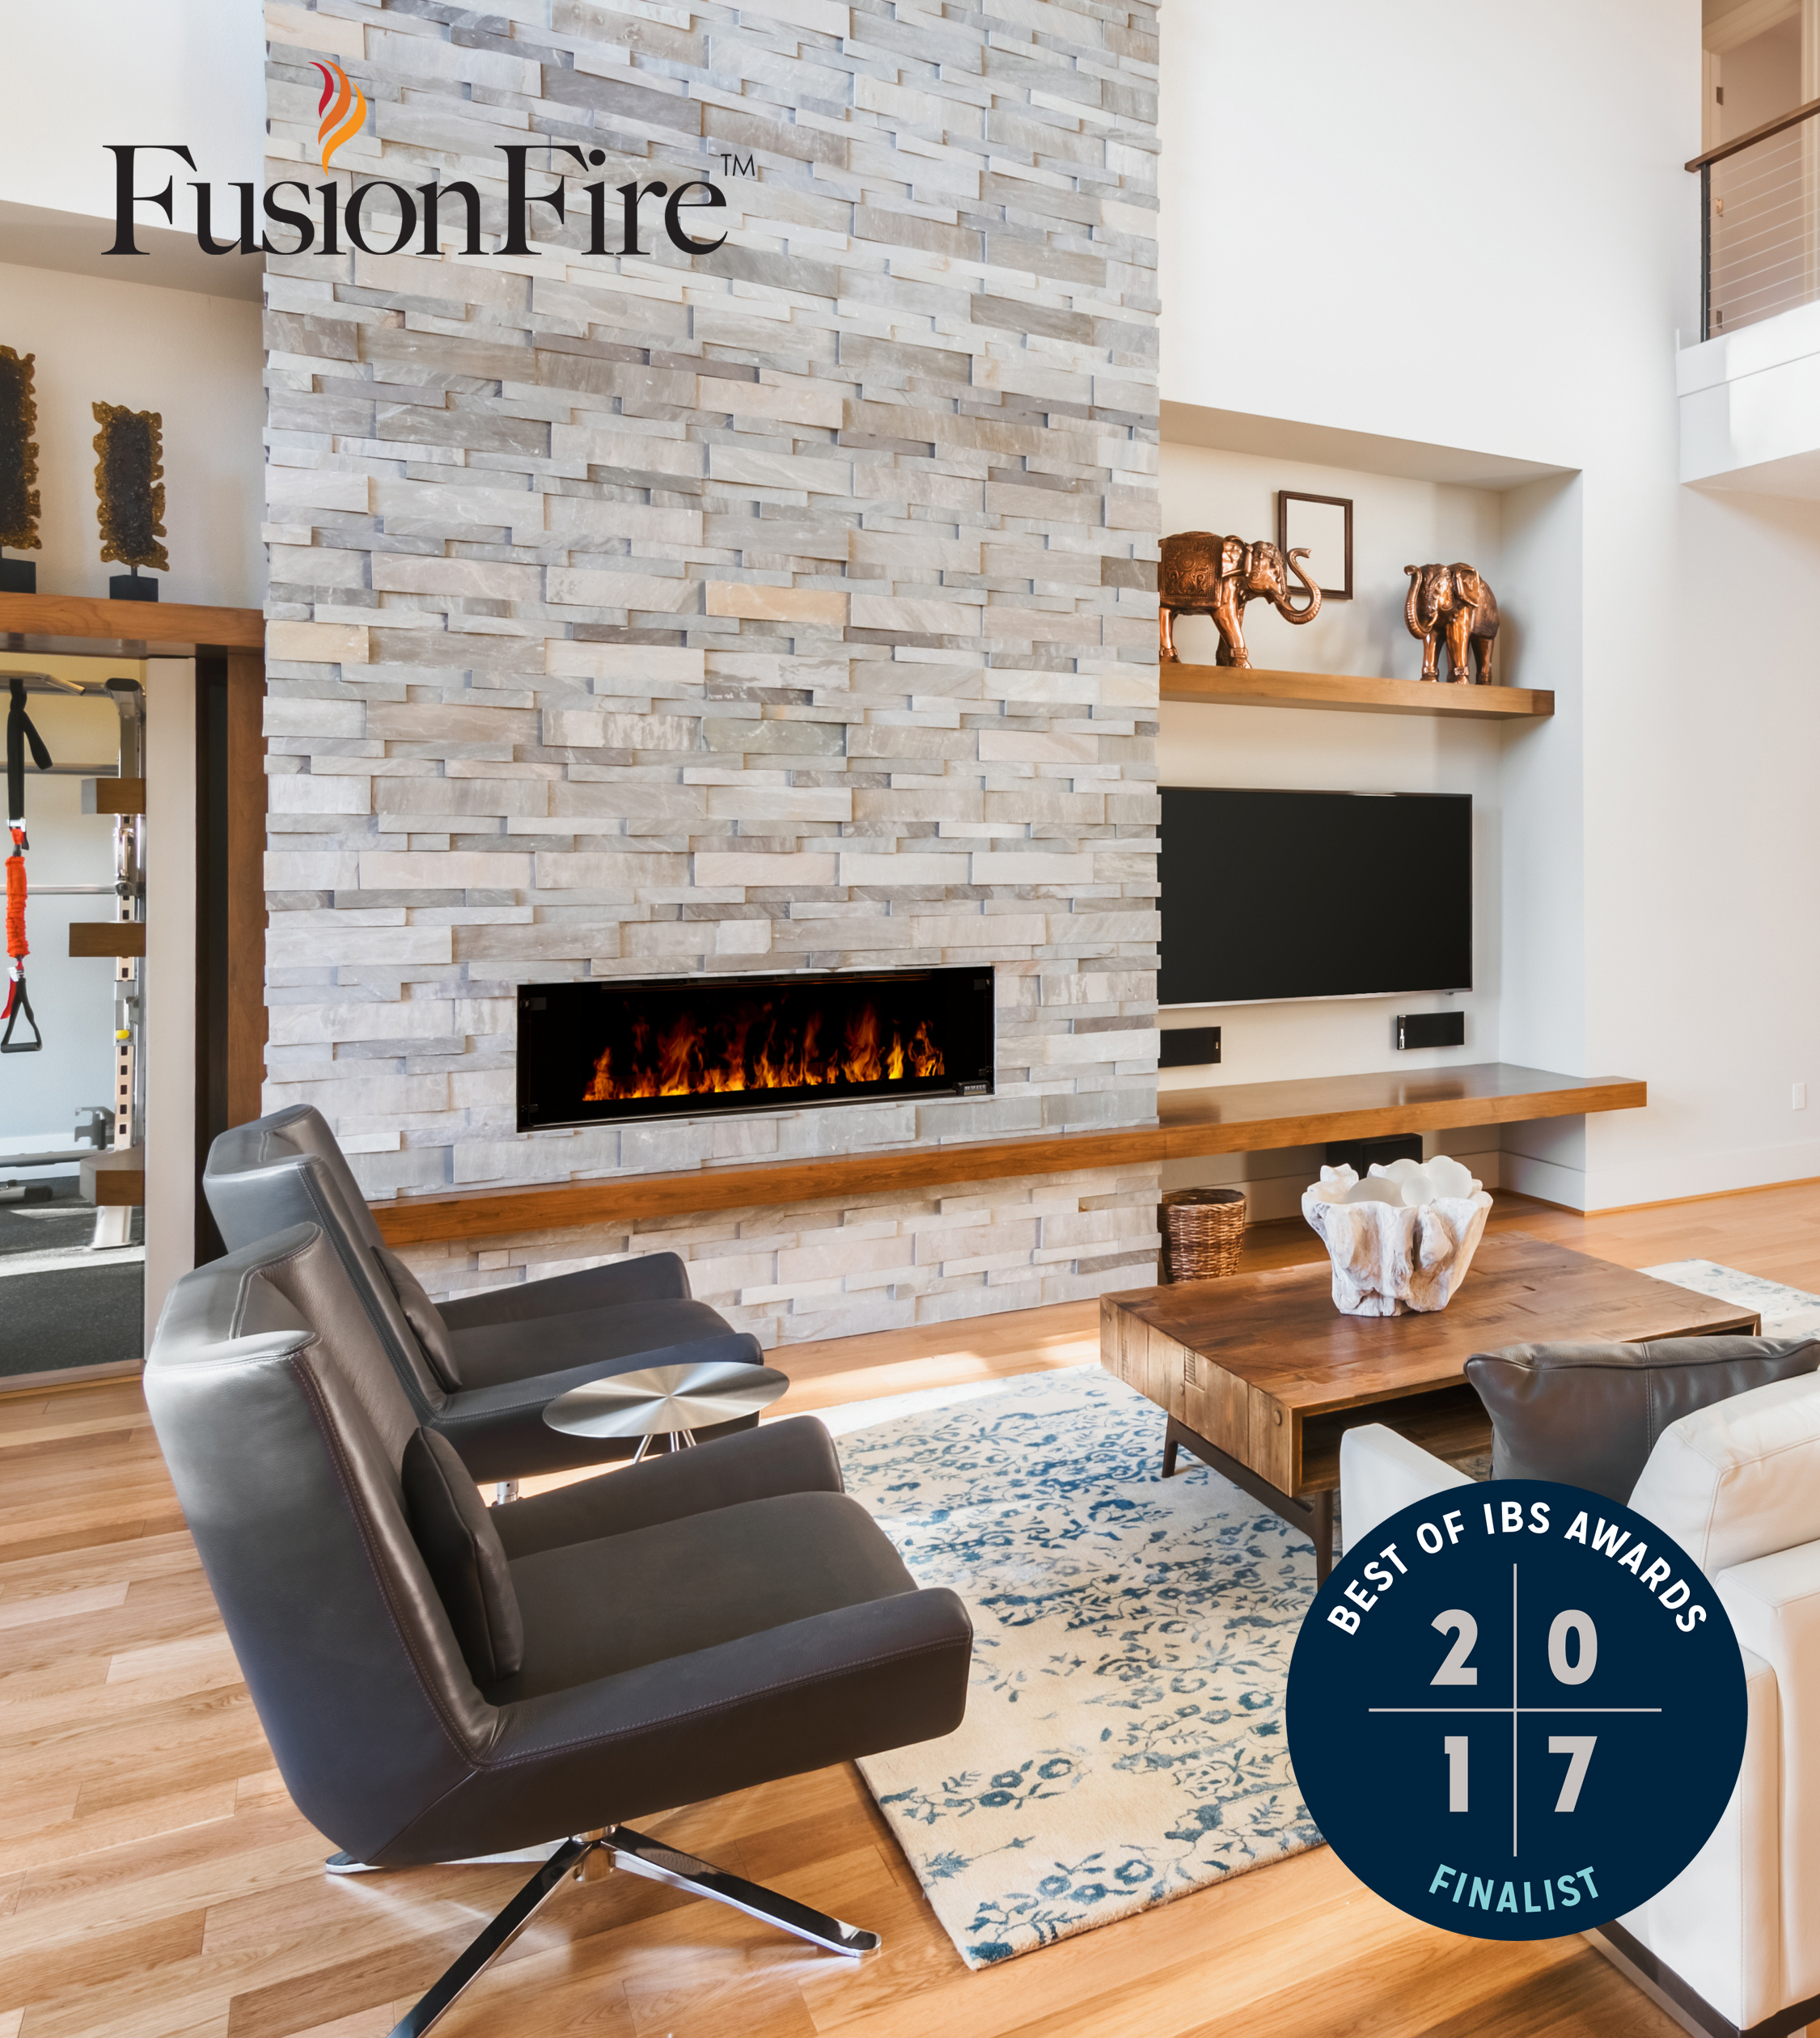 Introducing The New Modern Home: Introducing The FusionFire™ Steam Fireplace; Modern Flames